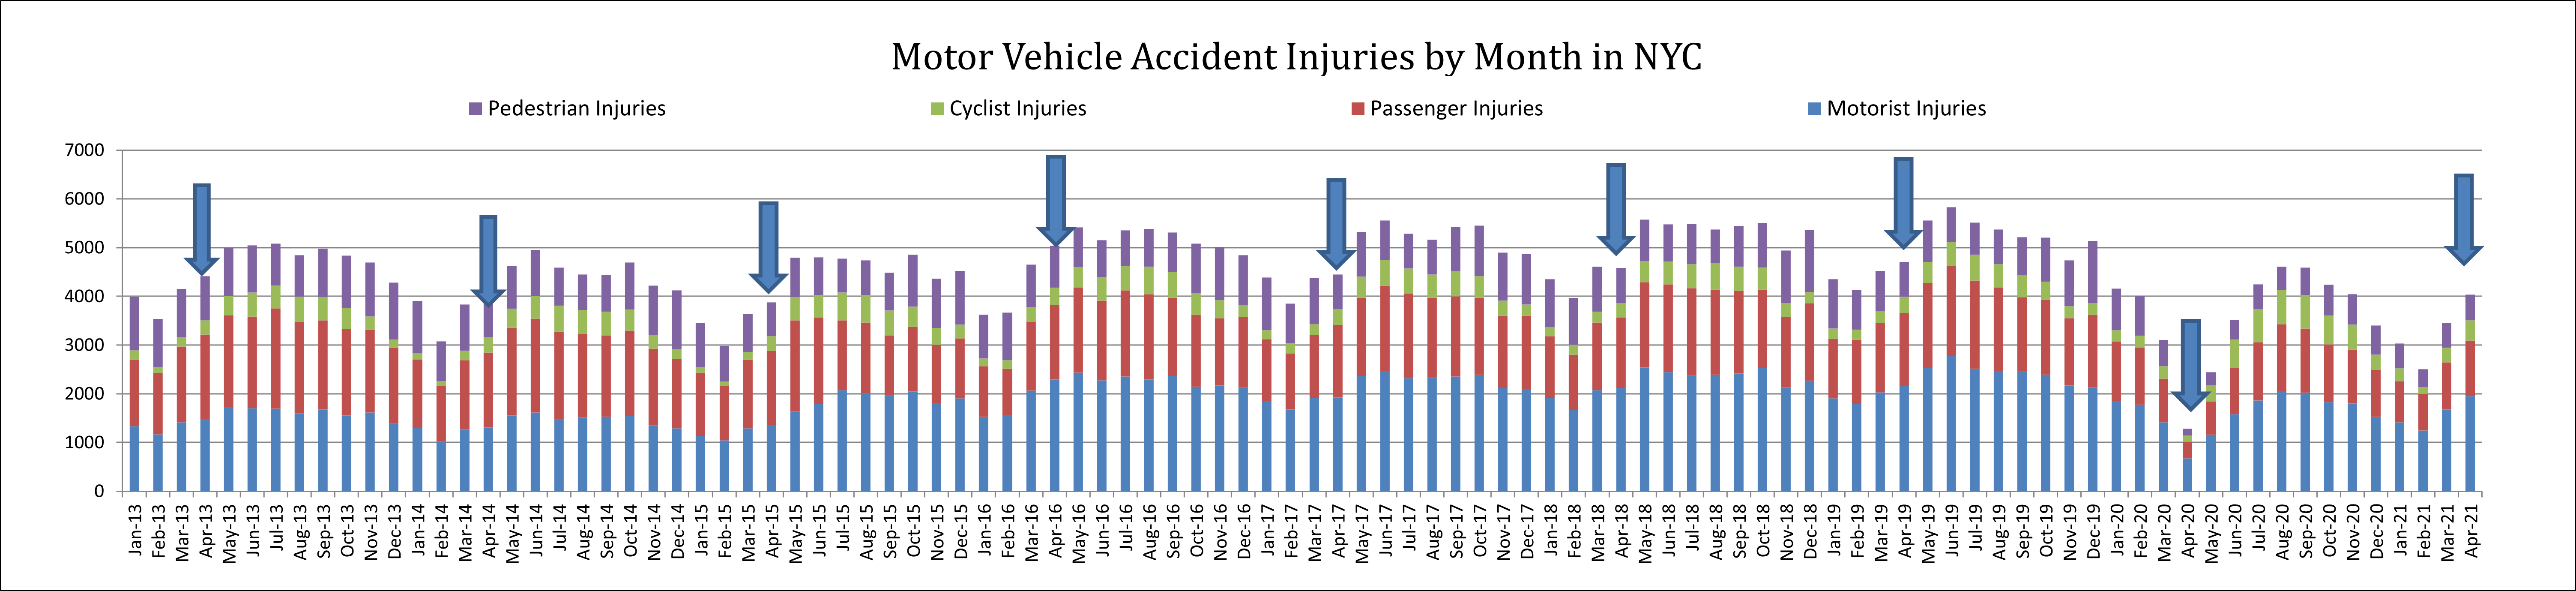 NYC car accident injuries by road users April 21